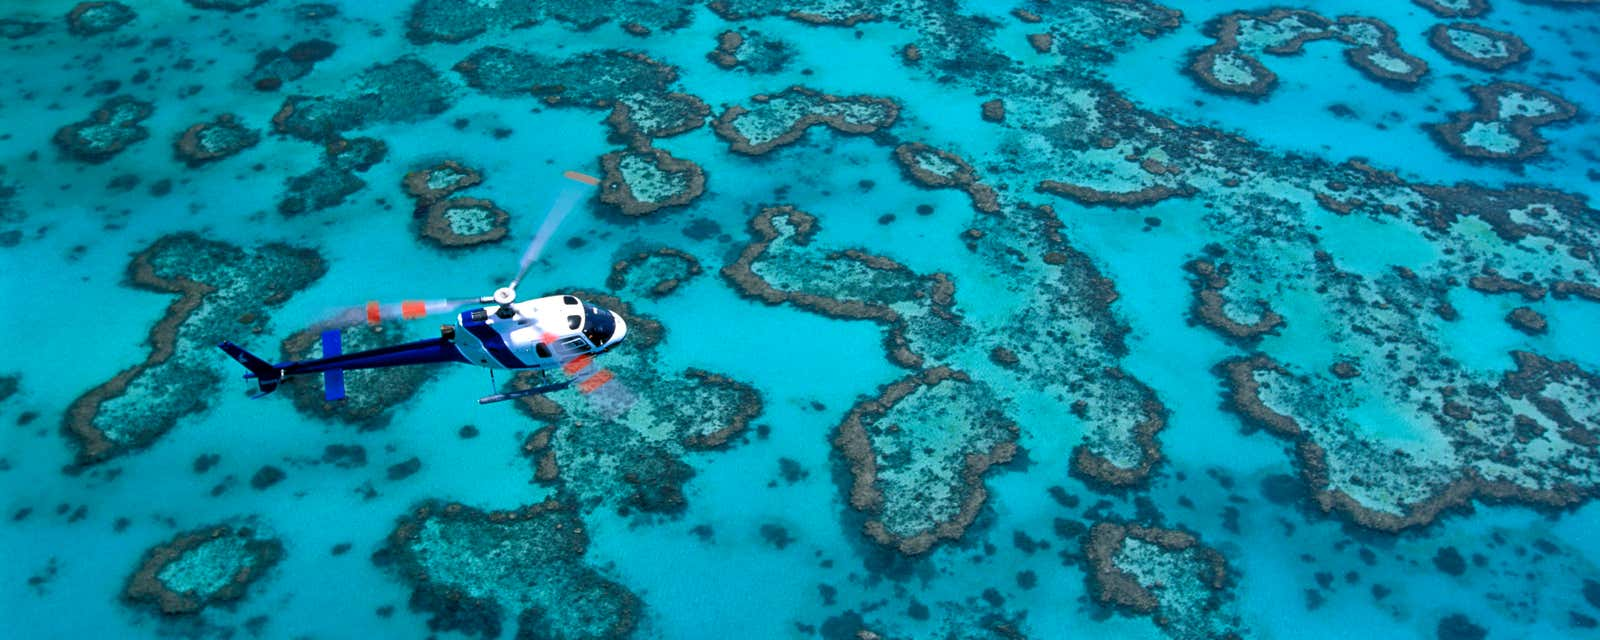 A helicopter hoveing over Heron Island, Great Barrier Reef, Australia.